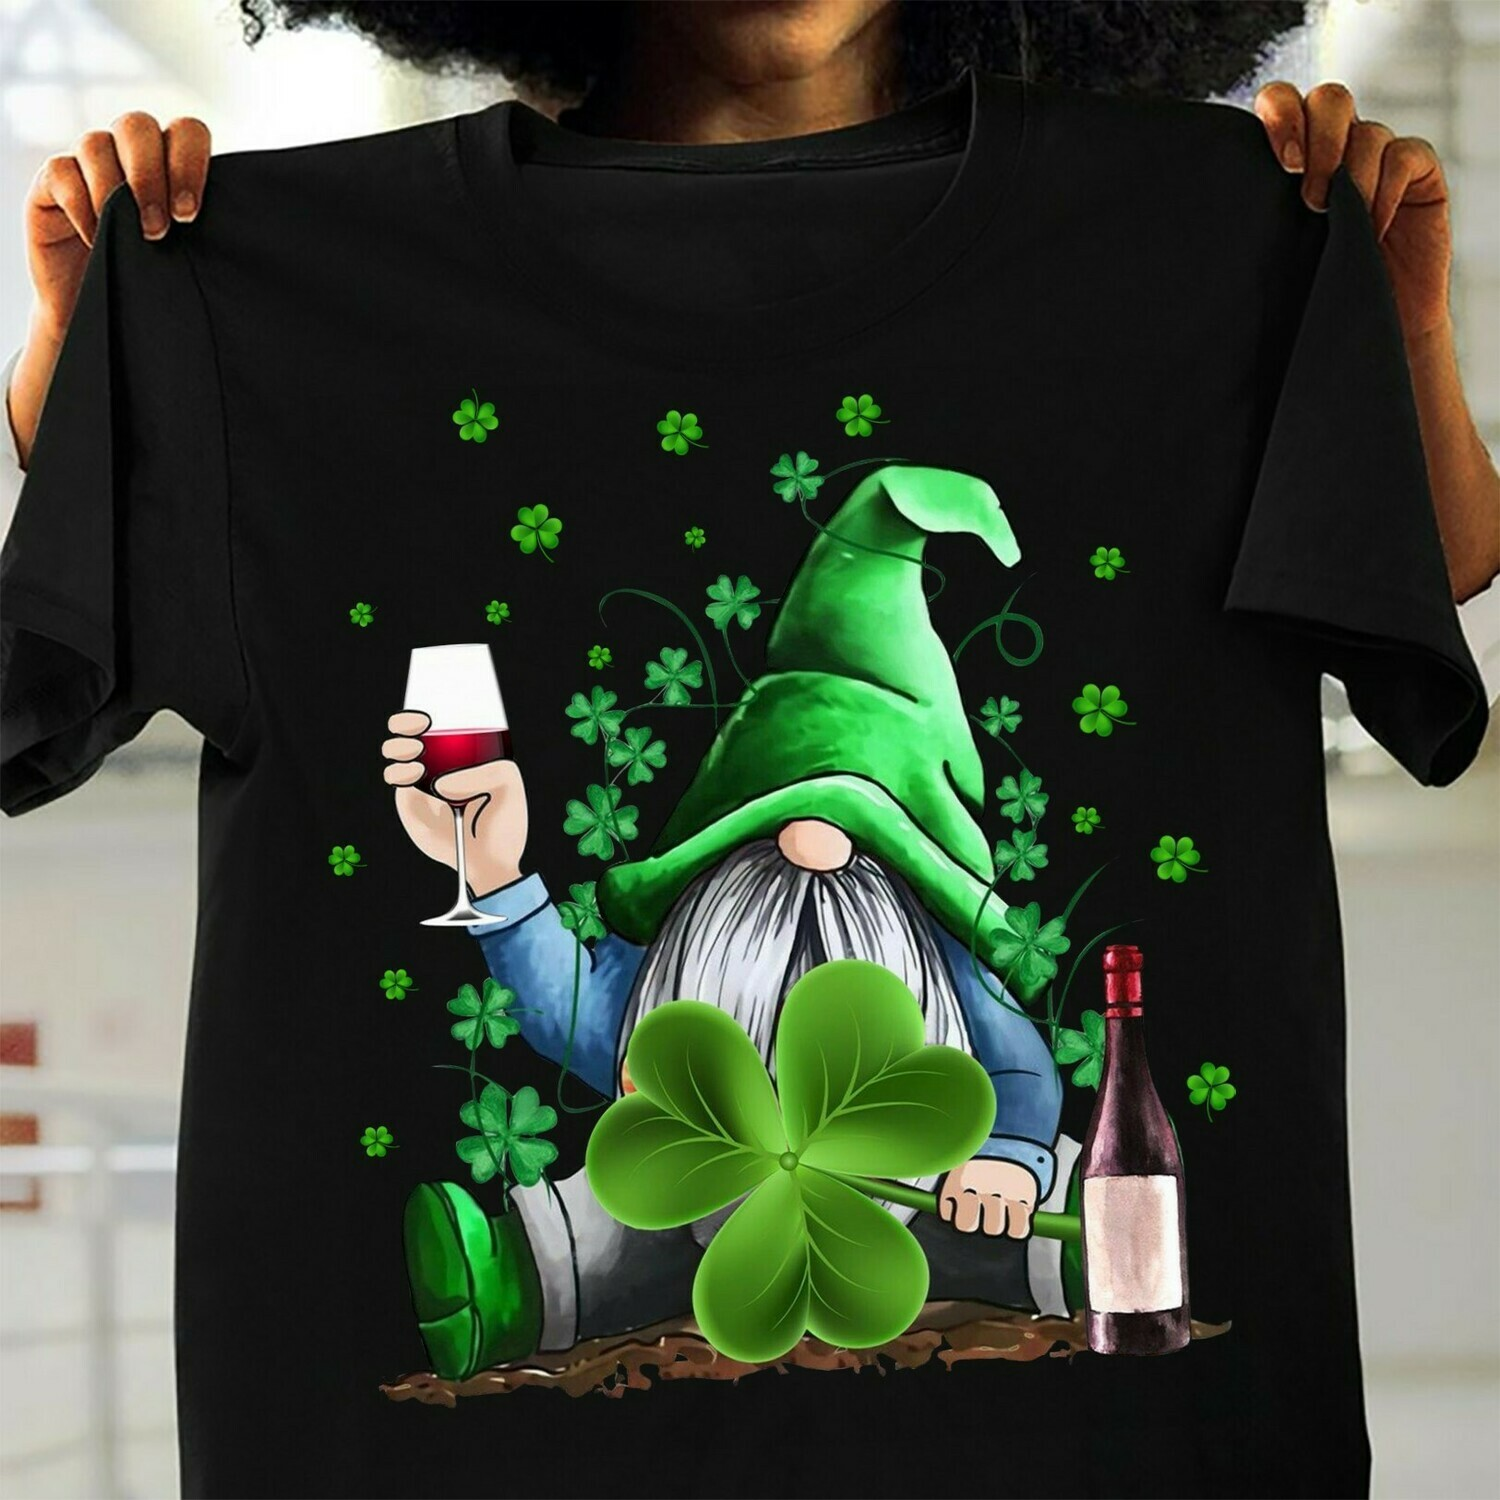 Irish Hippie Gnome happy St. Patrick's Day,Gnome Holding Red Wine mug and Green Shamrocks Four Leaf Clover  T-Shirt Hoodie Sweatshirt Sweater Tee Kids Youth Gifts Jolly Family Gifts